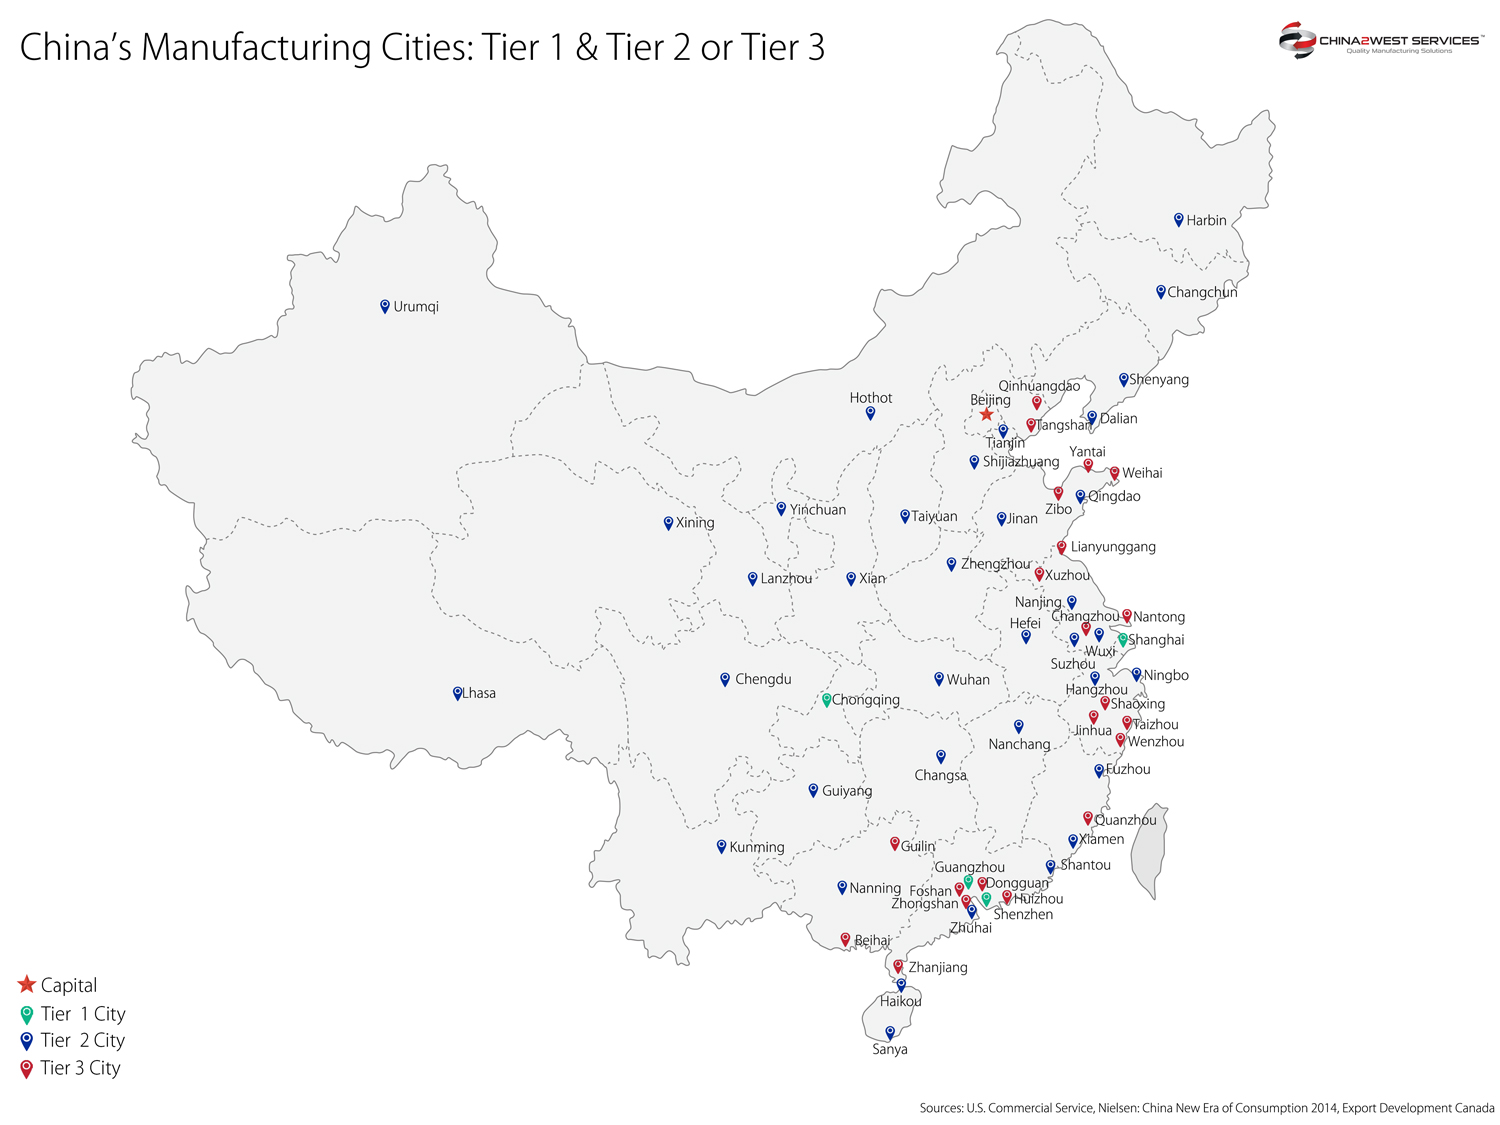 China Manufacturing Cities - China 2 West Services Ltd on